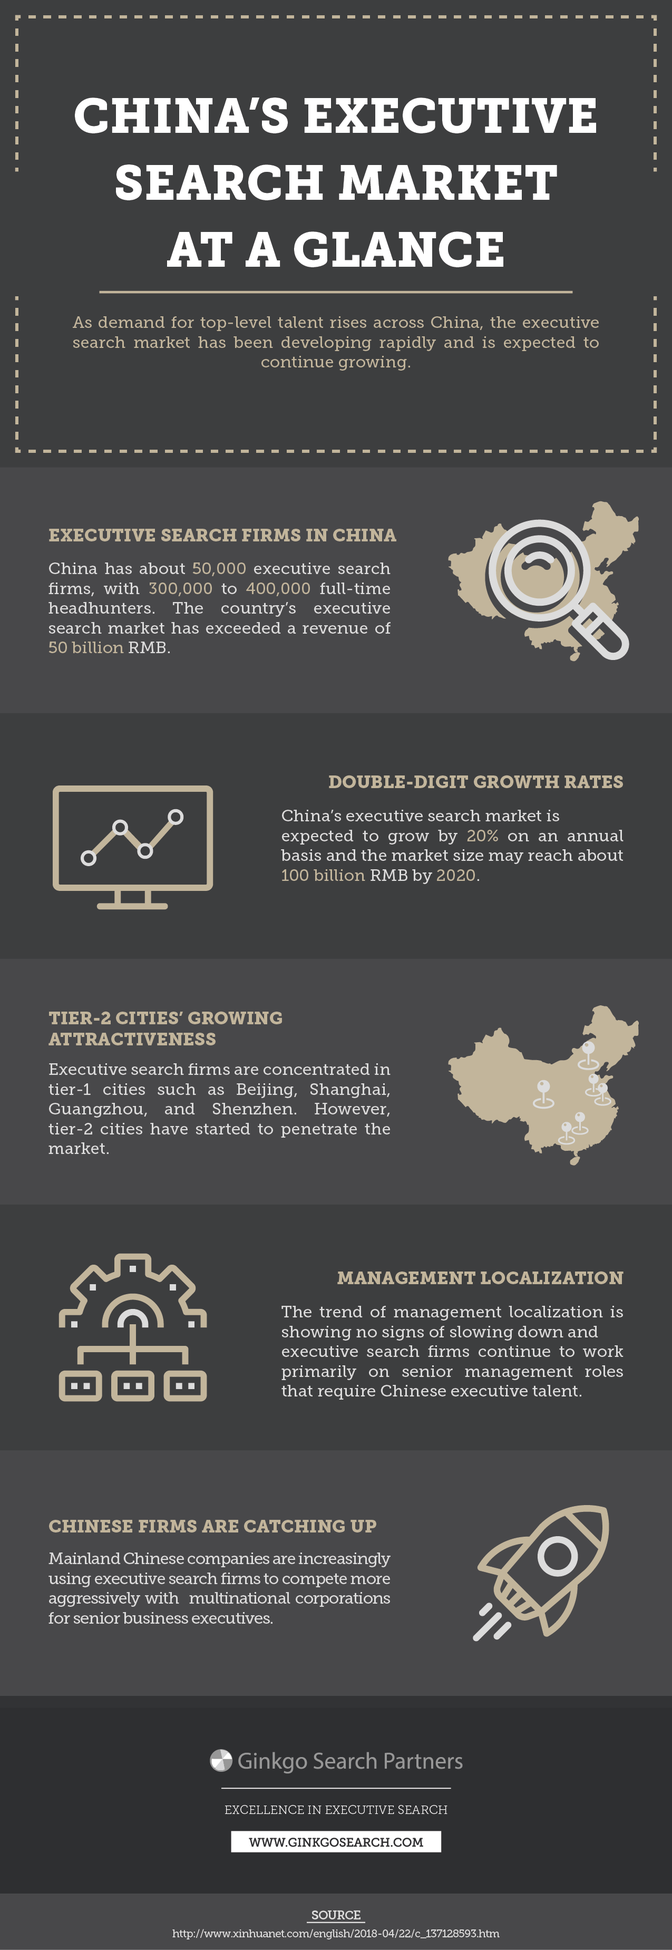 Executive Search Industry in China-Infographic